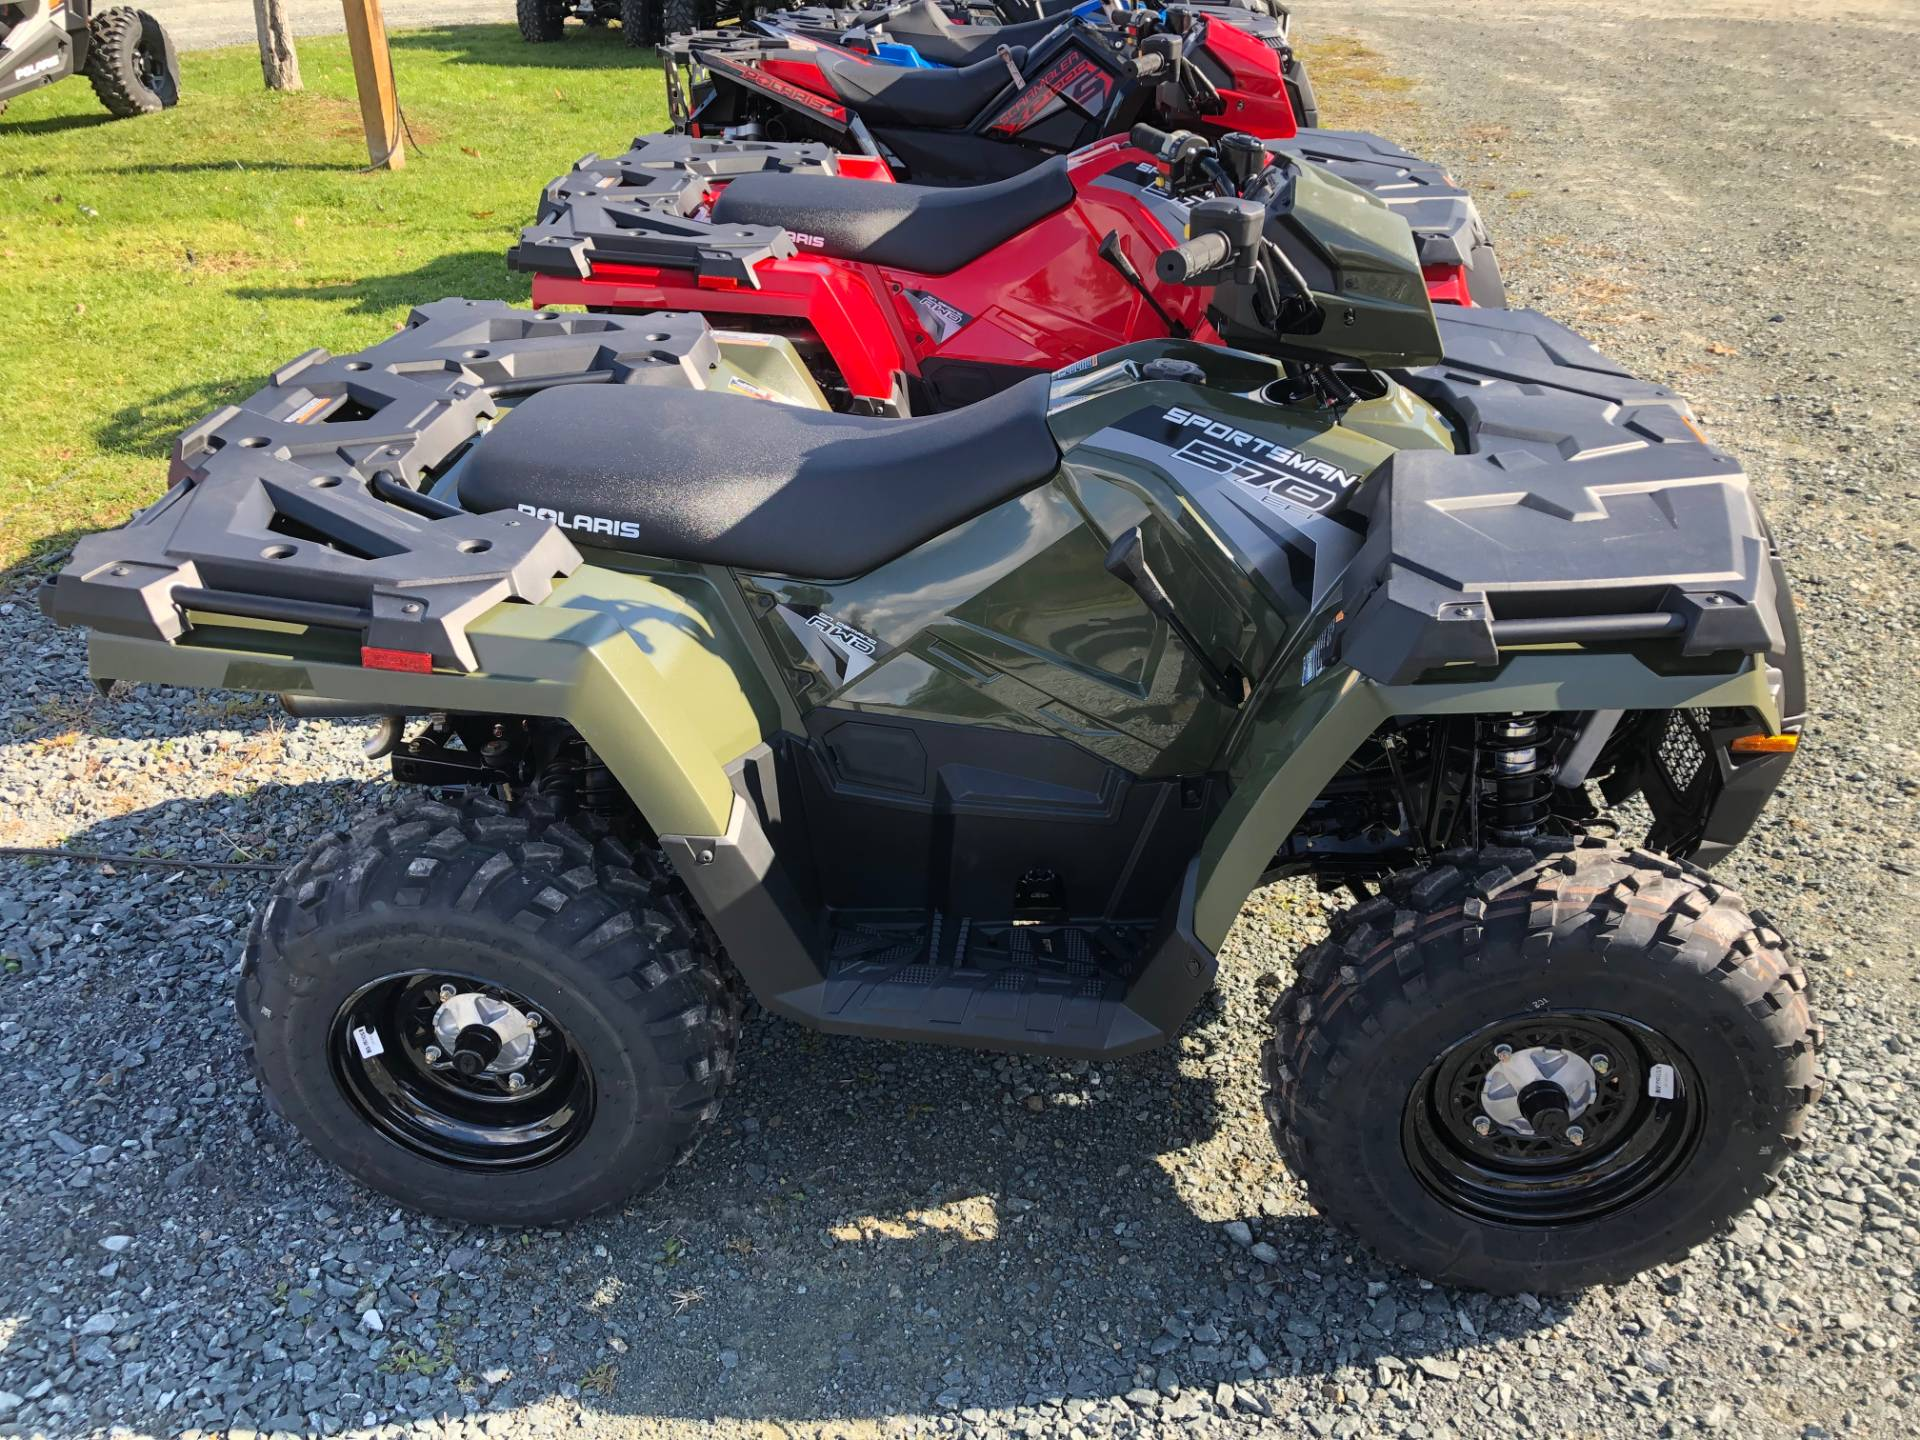 2020 Polaris Sportsman 570 in Troy, New York - Photo 2